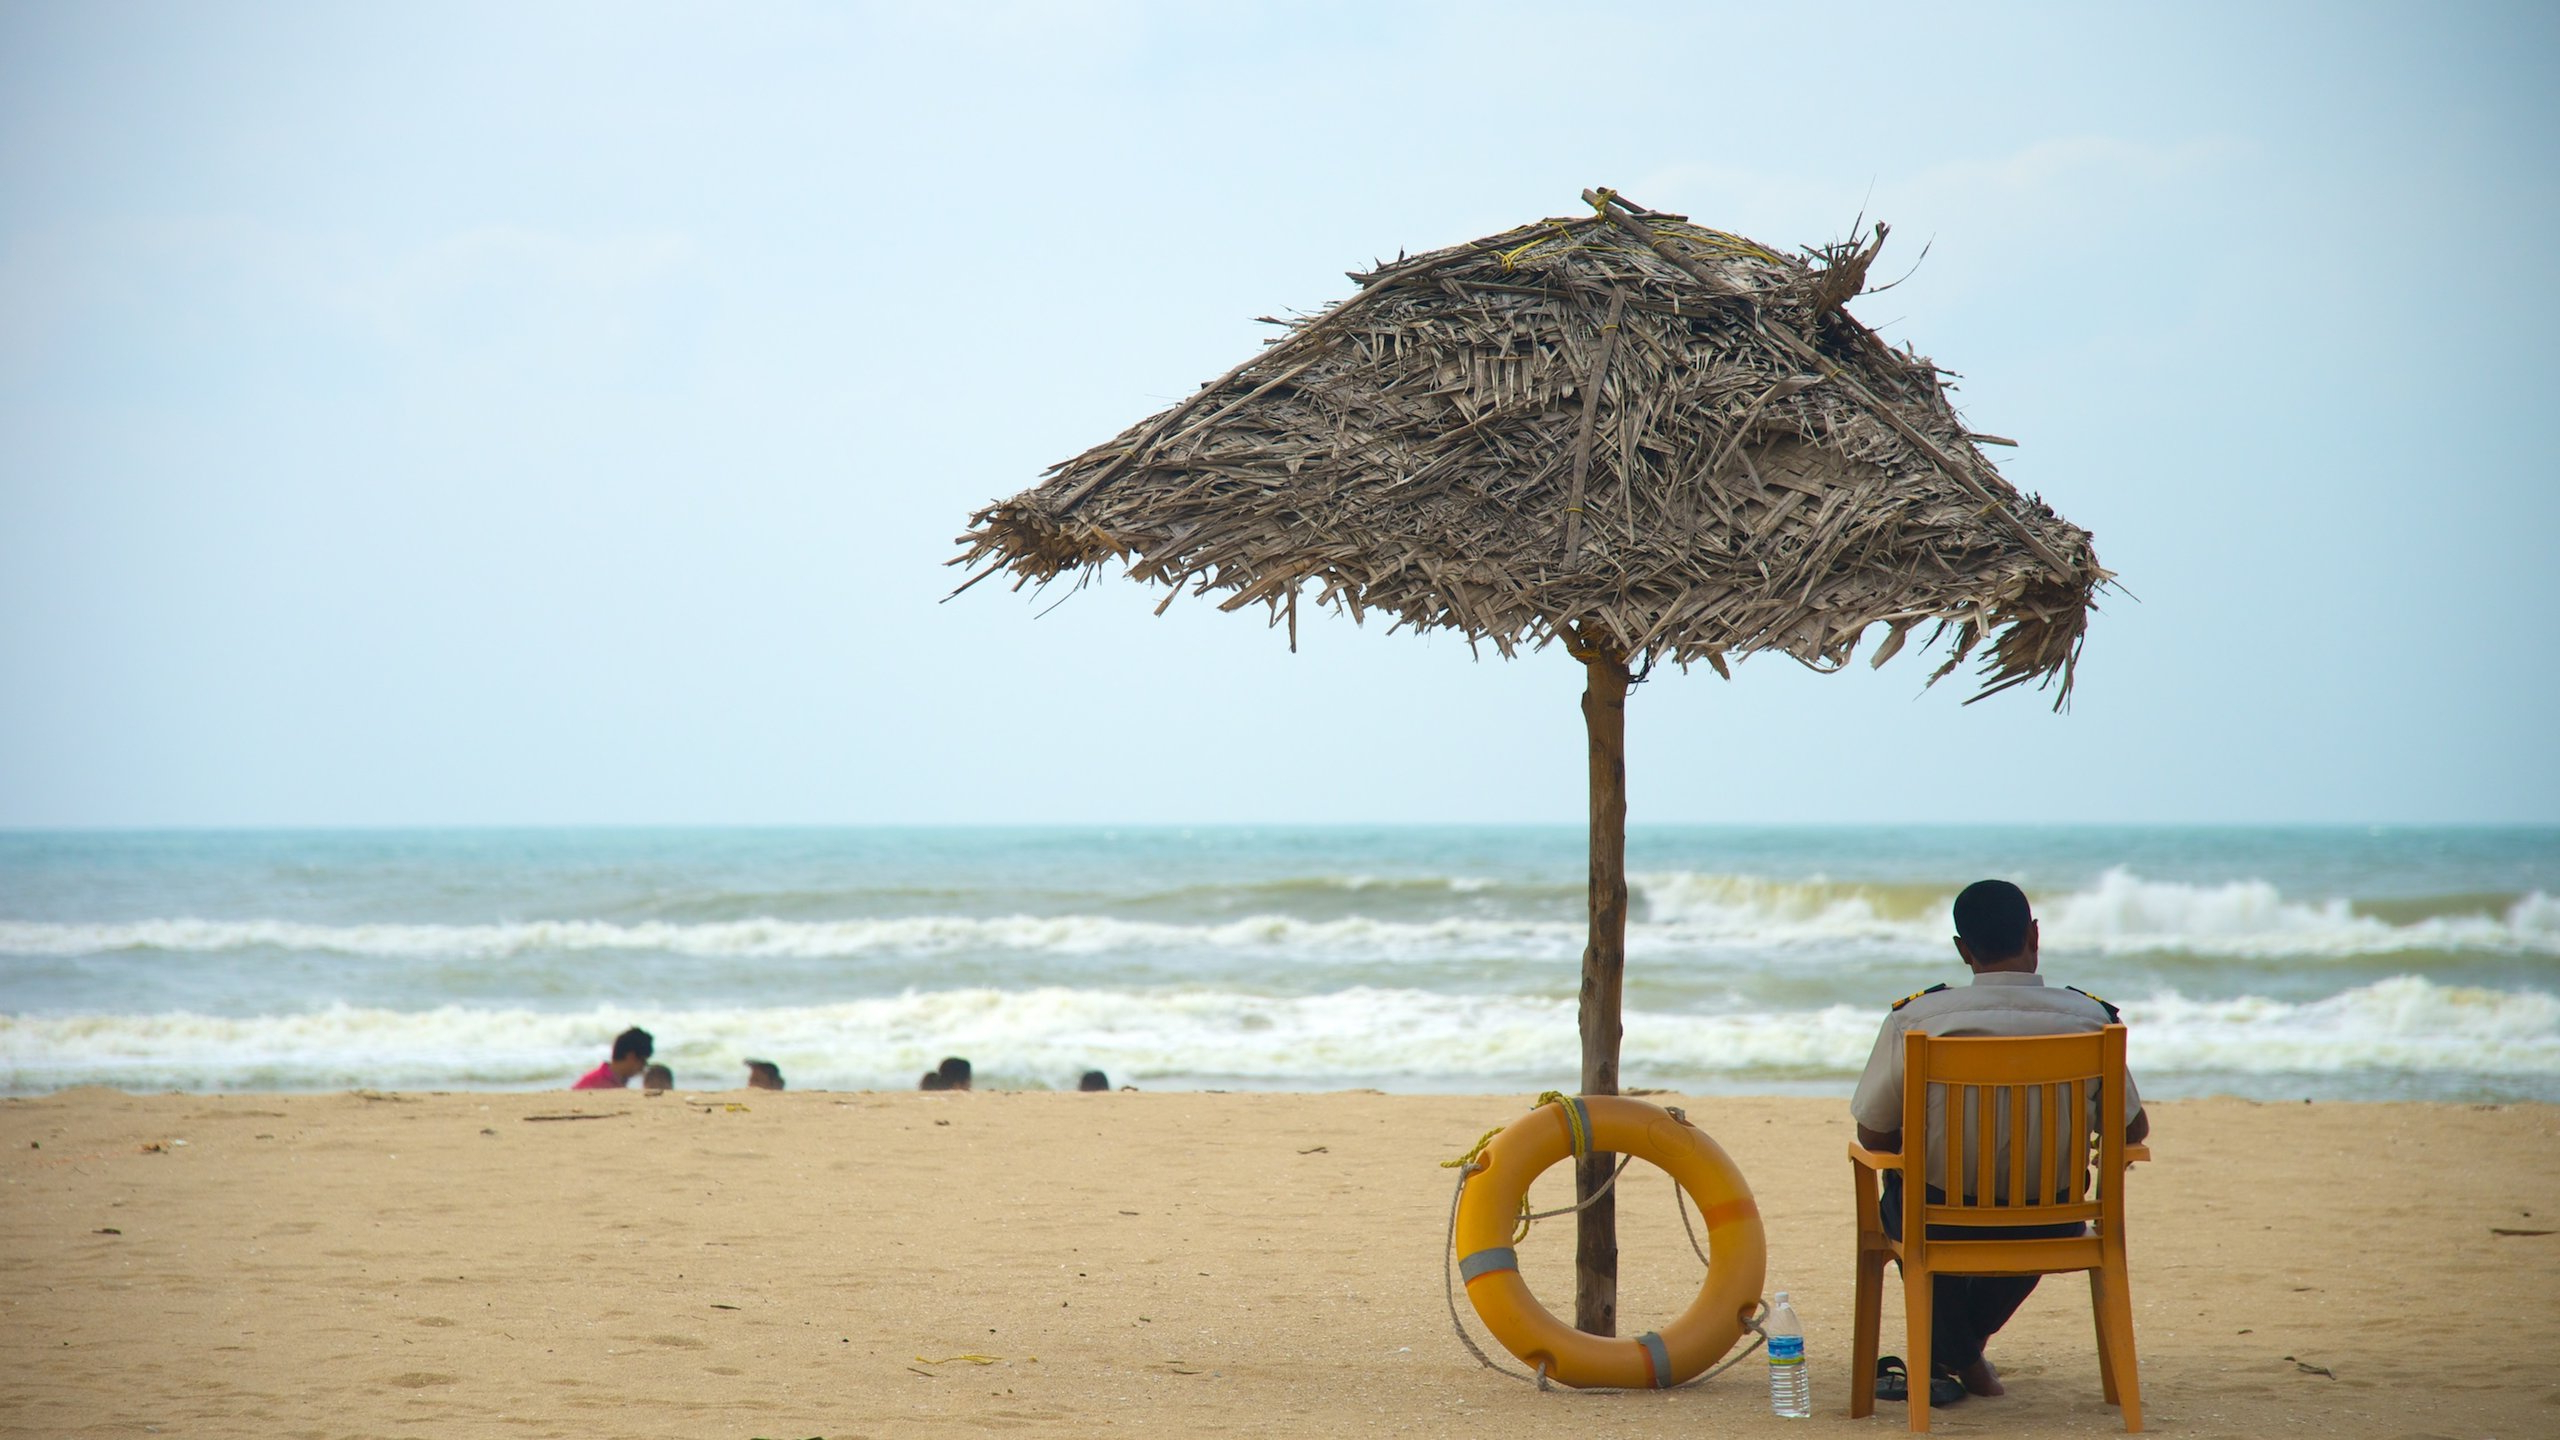 Top 10 Pondicherry Beach Hotels & Resorts In 2019 For Widely Used Auriville Beach Umbrellas (View 13 of 20)